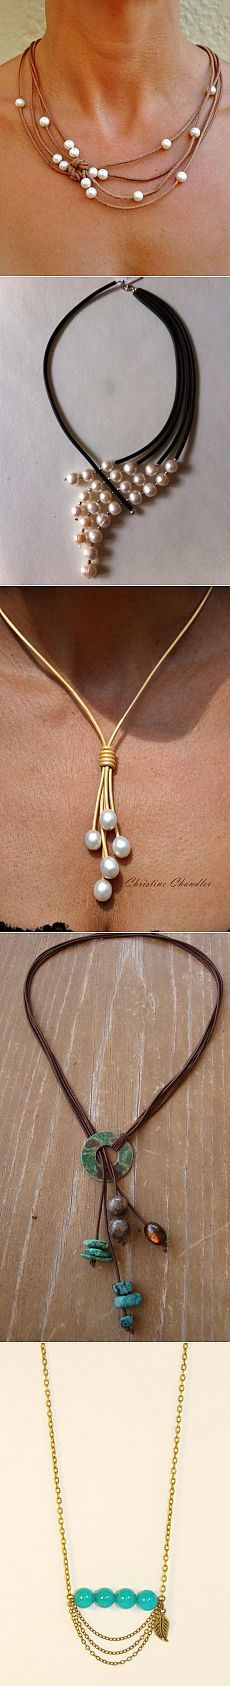 Fashion pearls (compilation and bonus) / Jewellery and bijouterie / SECOND STREET